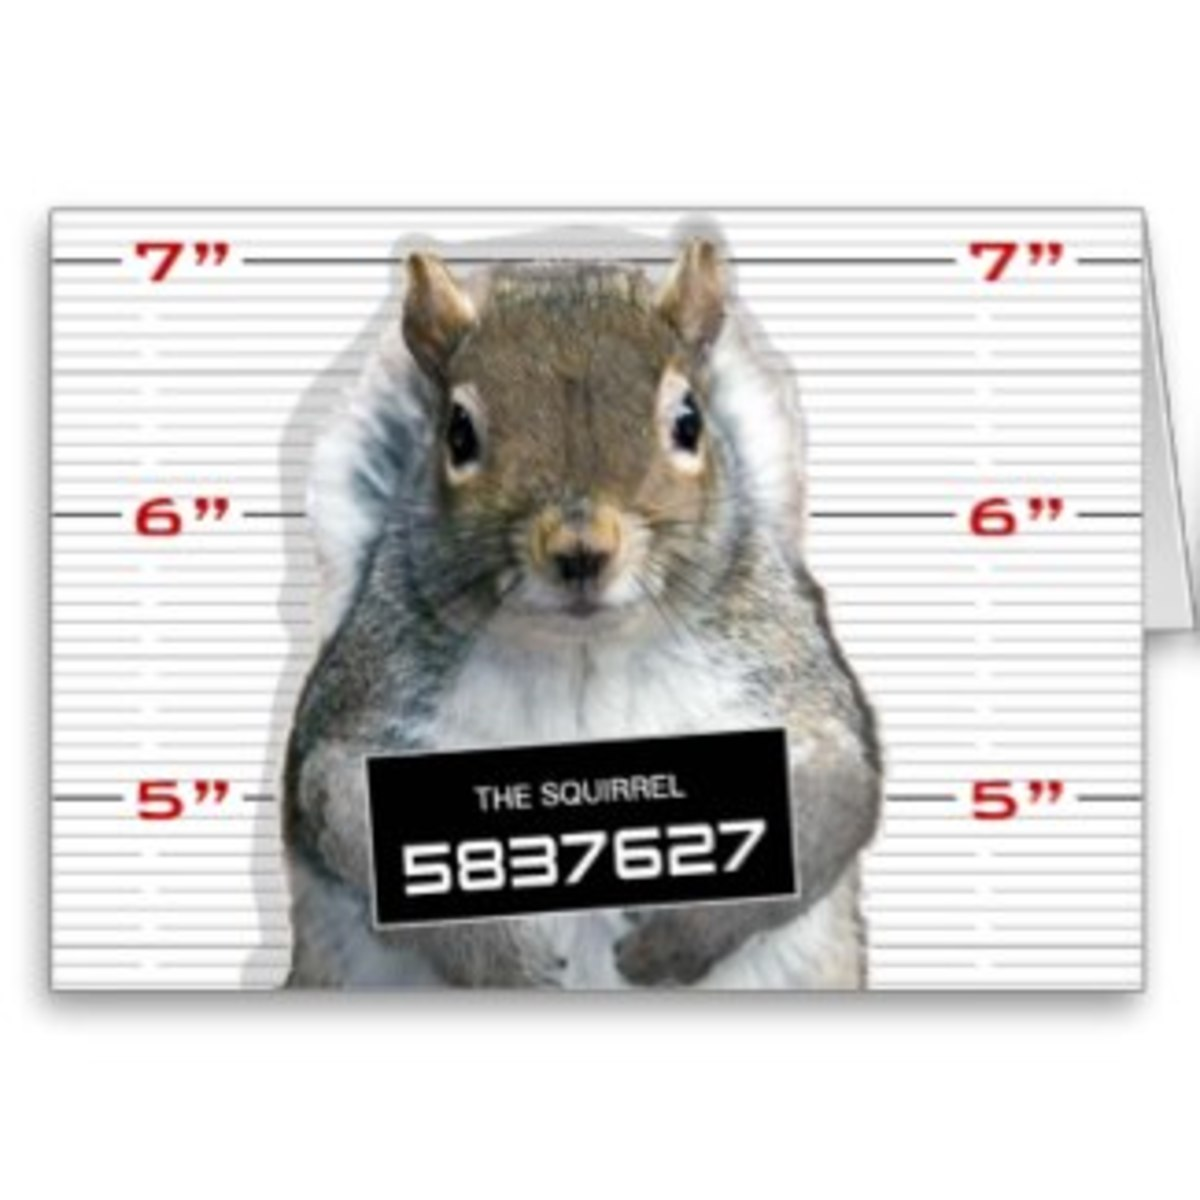 Oh, that naughty squirrel. My Florida neighbors had squirrels invade their attic. It cost them $4,000 to have someone come in to trap and remove the squirrels, clean up the debris, and block places where the squirrels had entered.